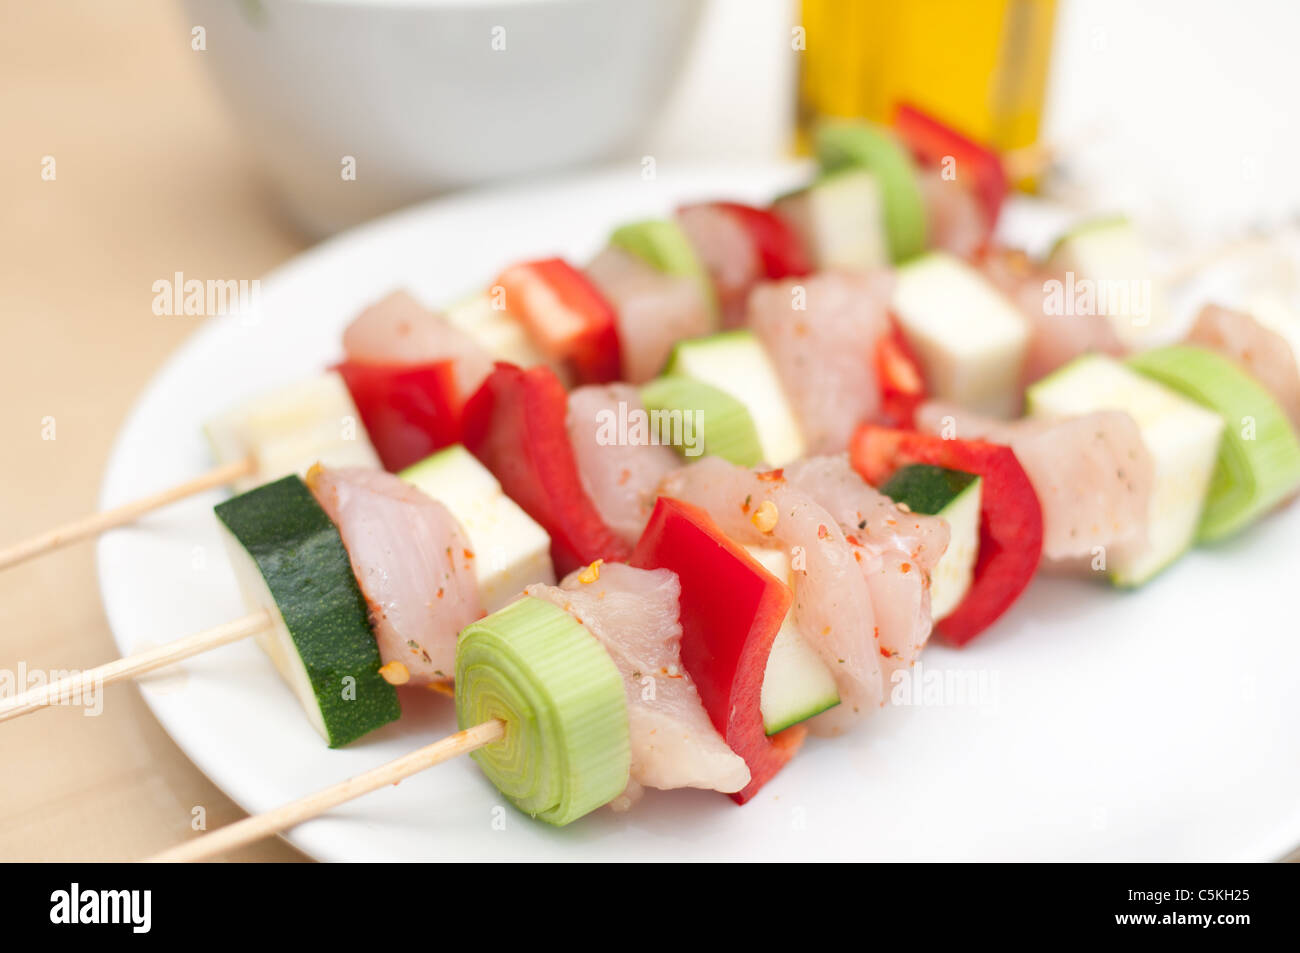 Preparation of shish kebab Stock Photo